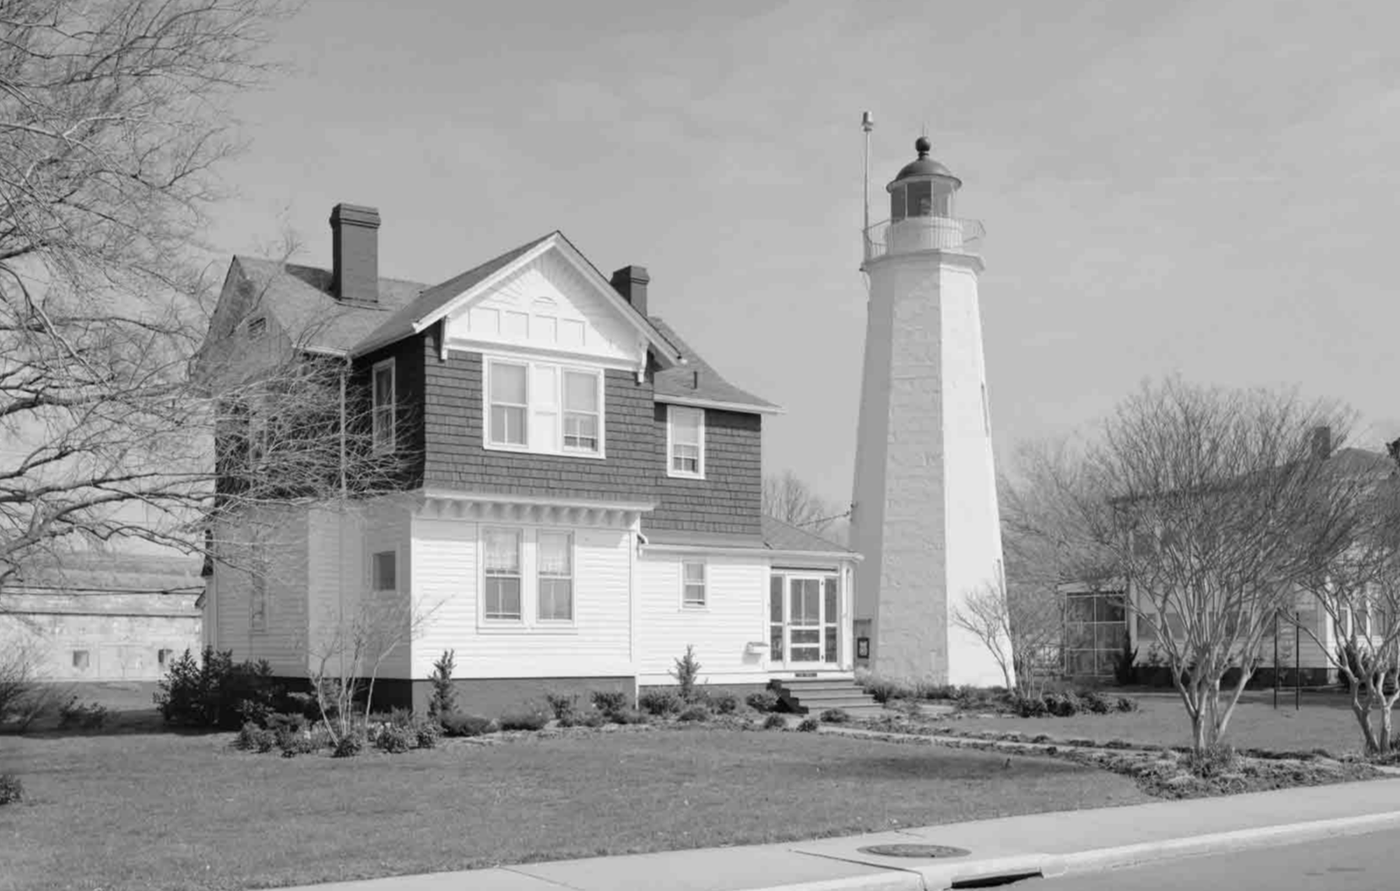 Childhood home of James Wormley Jones near the U.S. Army base at Fort Monroe in Virginia. (Black and white photo)